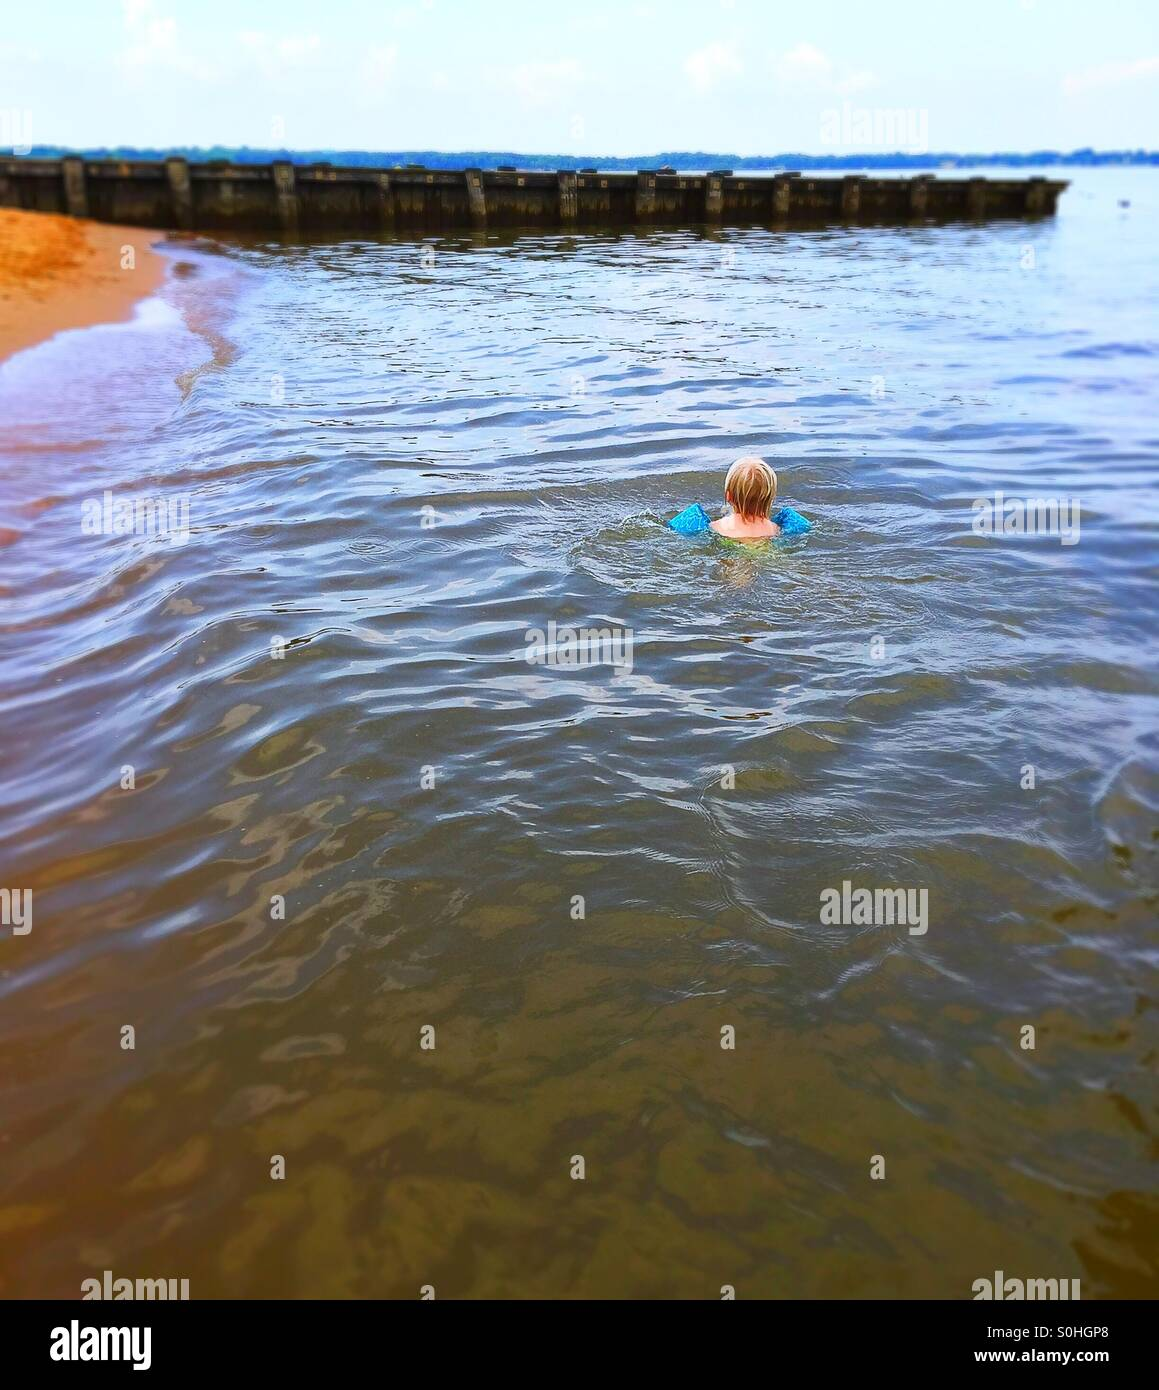 Toddler swimming in the Gunpowder River - Stock Image